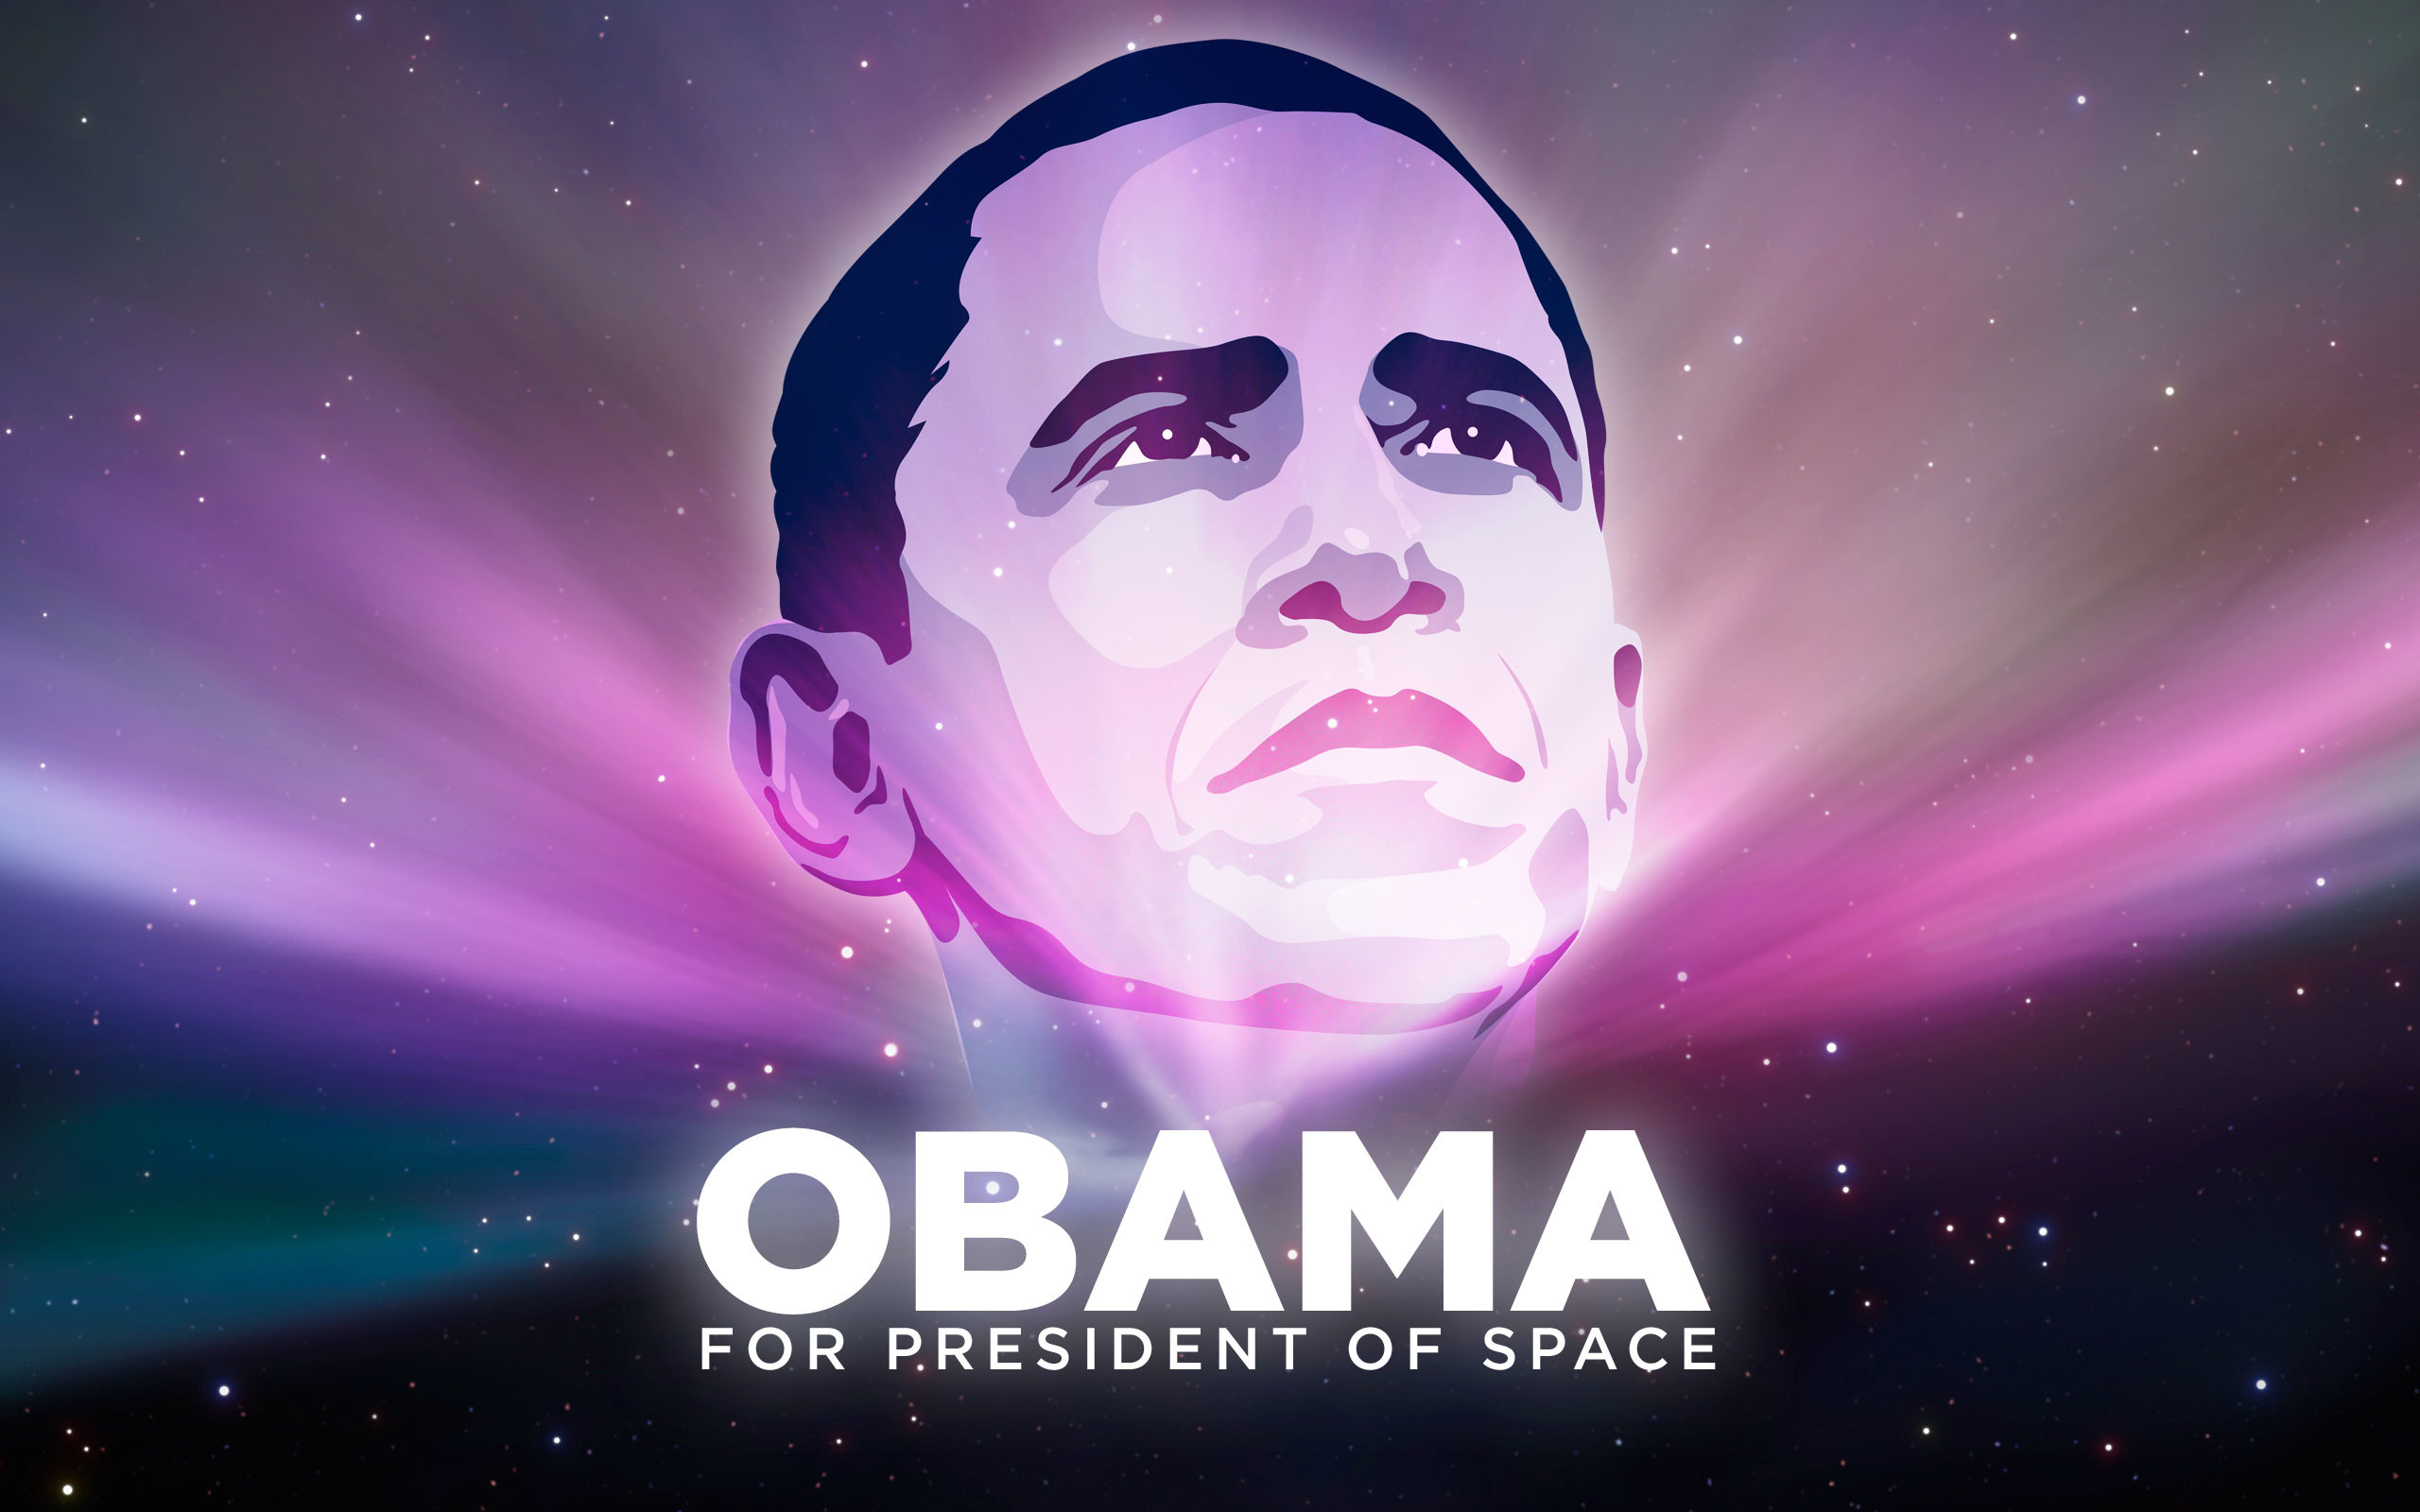 Barack Obama U.S. President wallpapers and images – wallpapers .